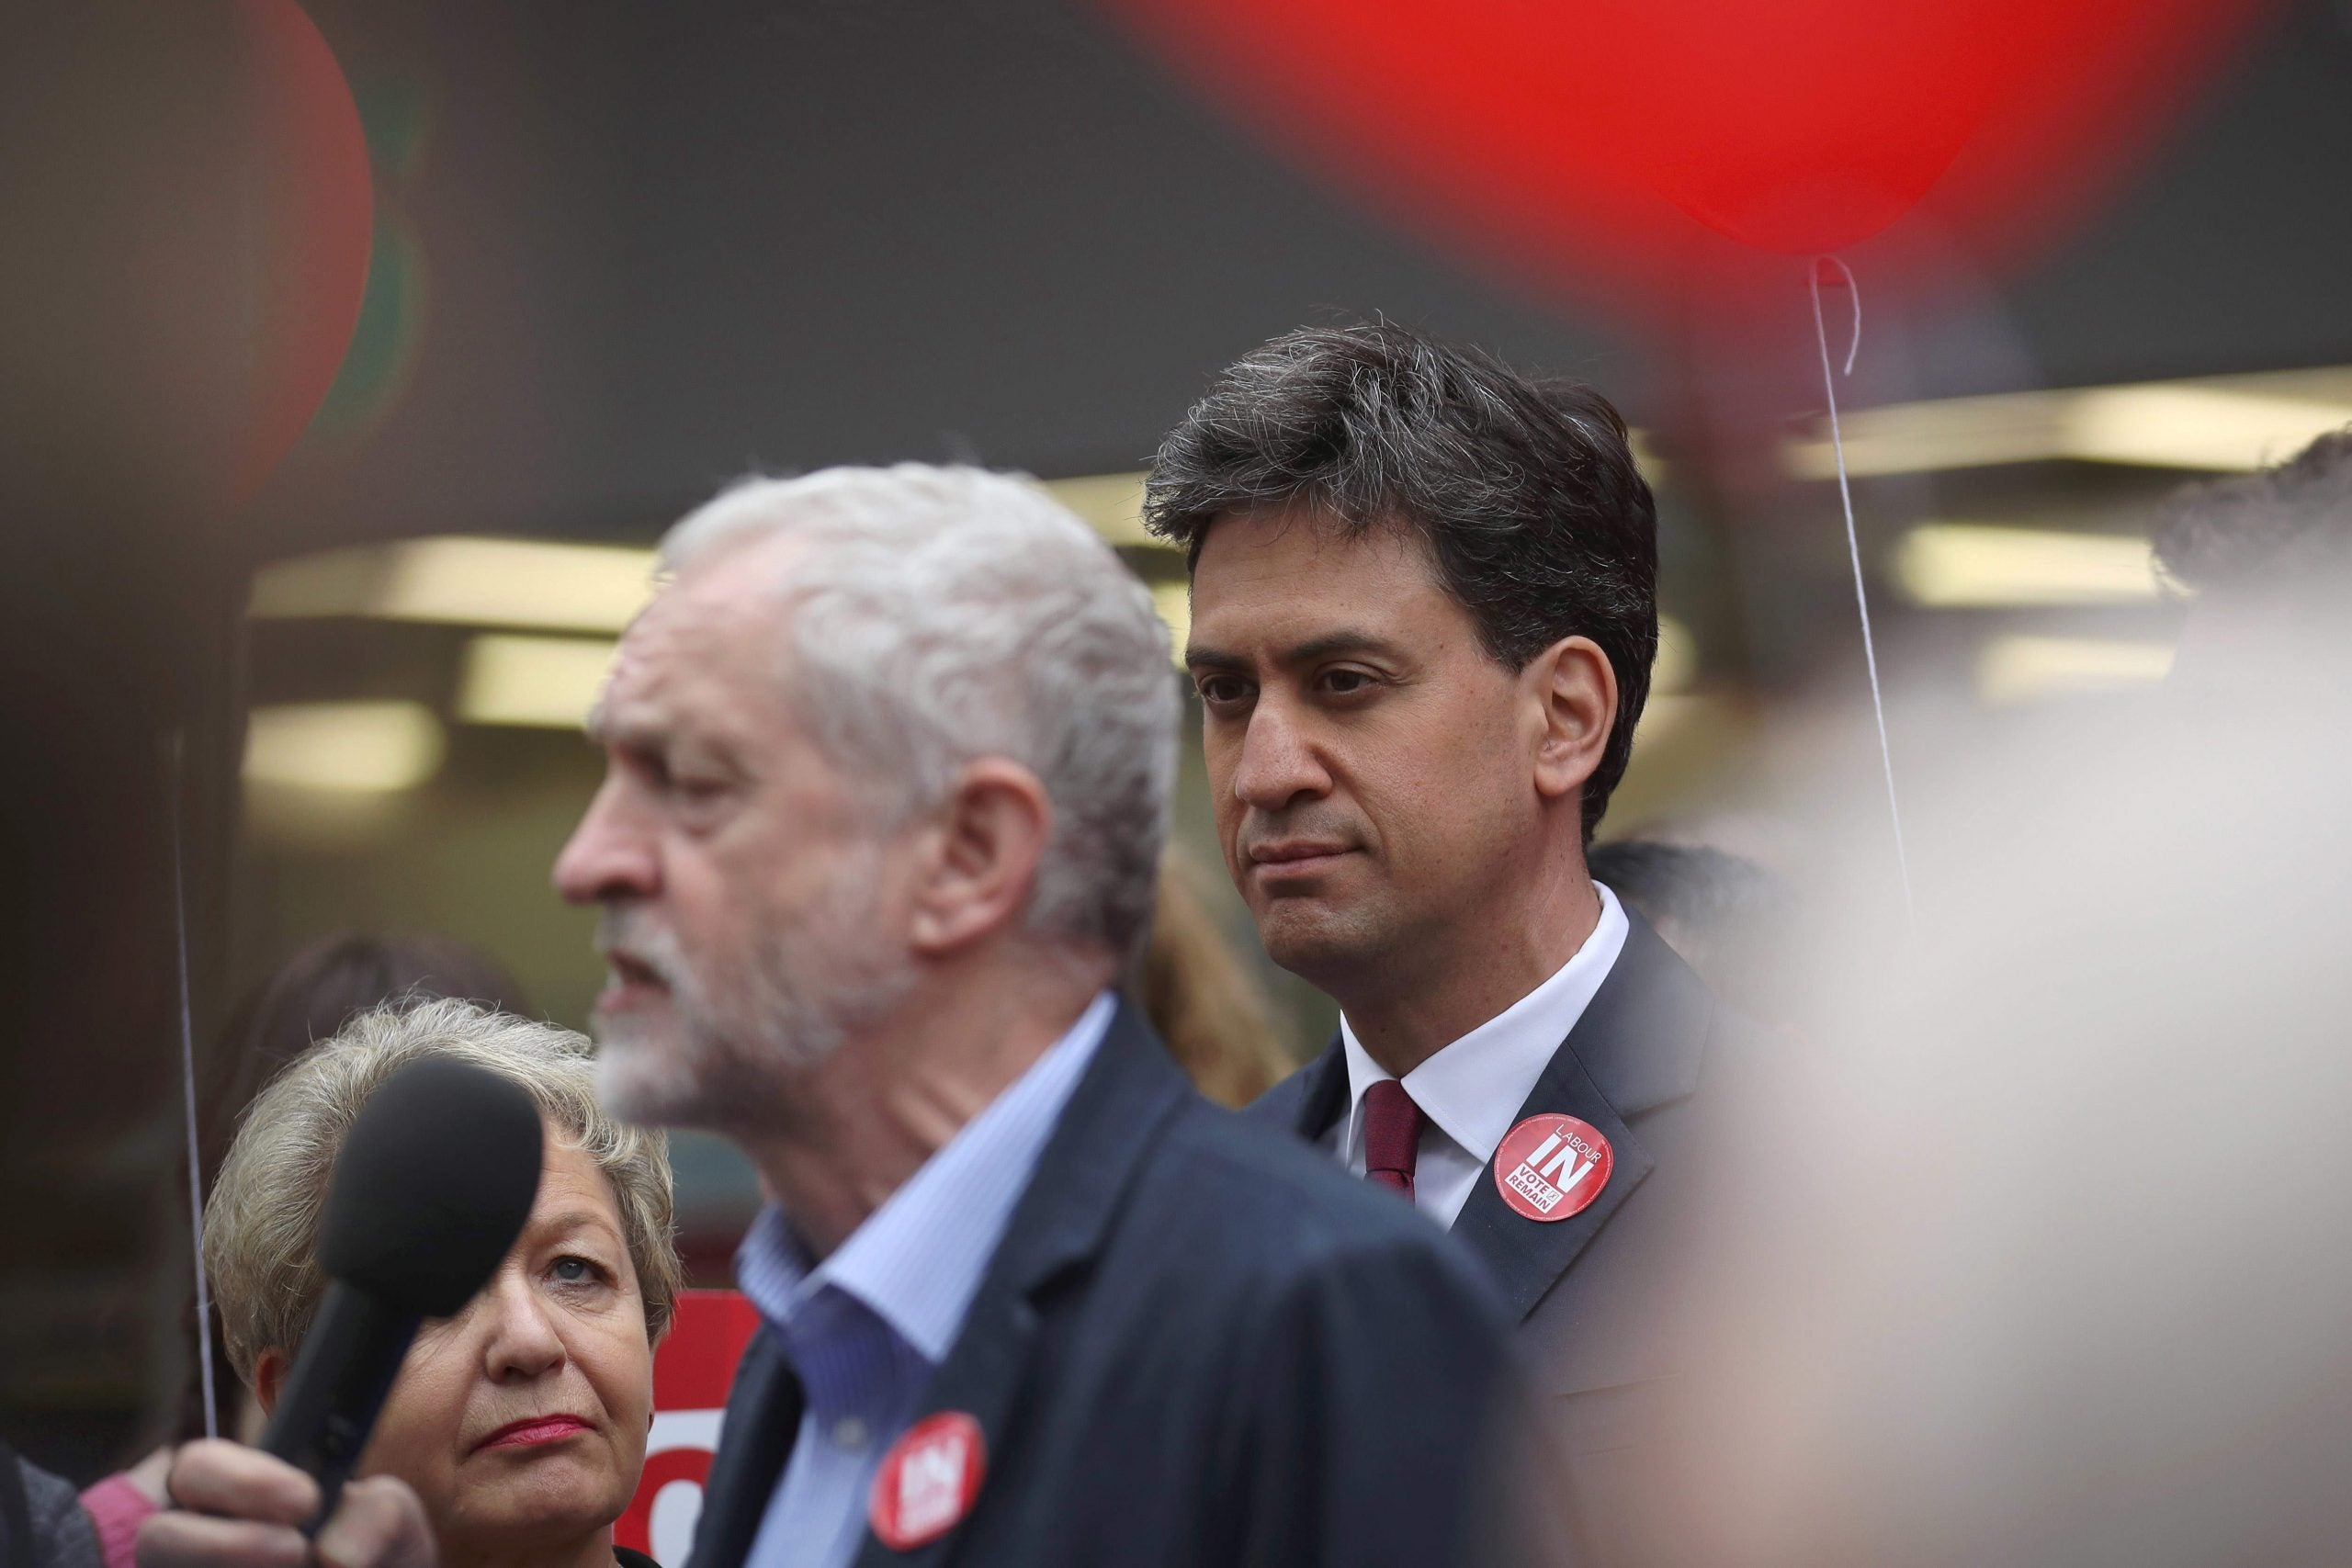 Far from being a left-wing radical, Jeremy Corbyn is slouching towards Milibandism